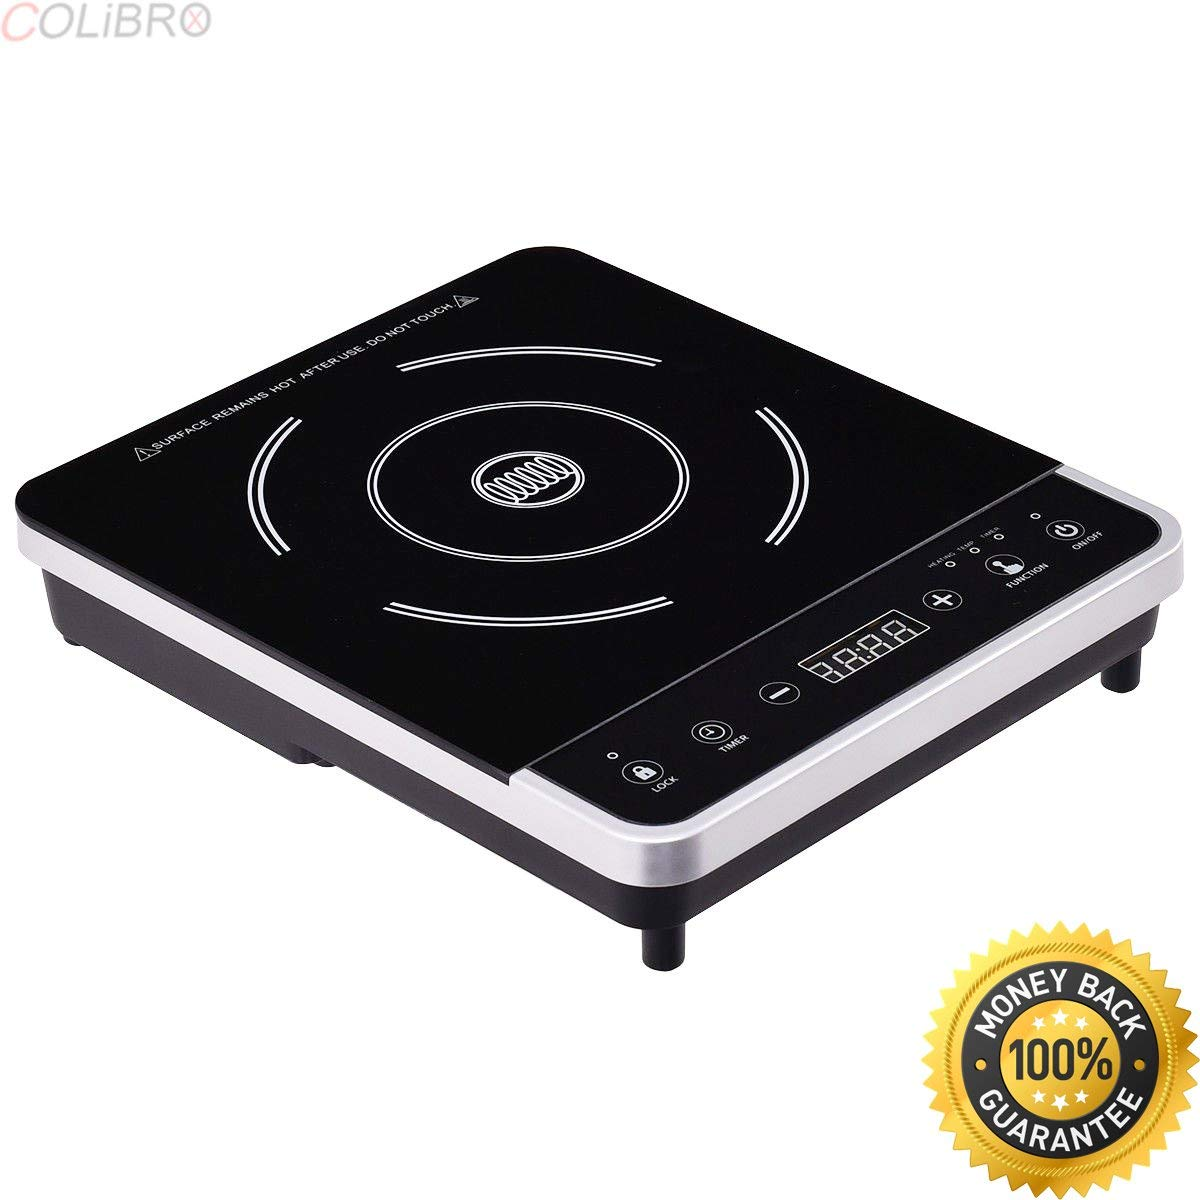 COLIBROX--Electric Induction Cooker Single Burner Digital Hot Plate Cooktop Countertop New. best portable induction cooktop consumer reports. induction cooktop pros and cons. target induction cooktop.